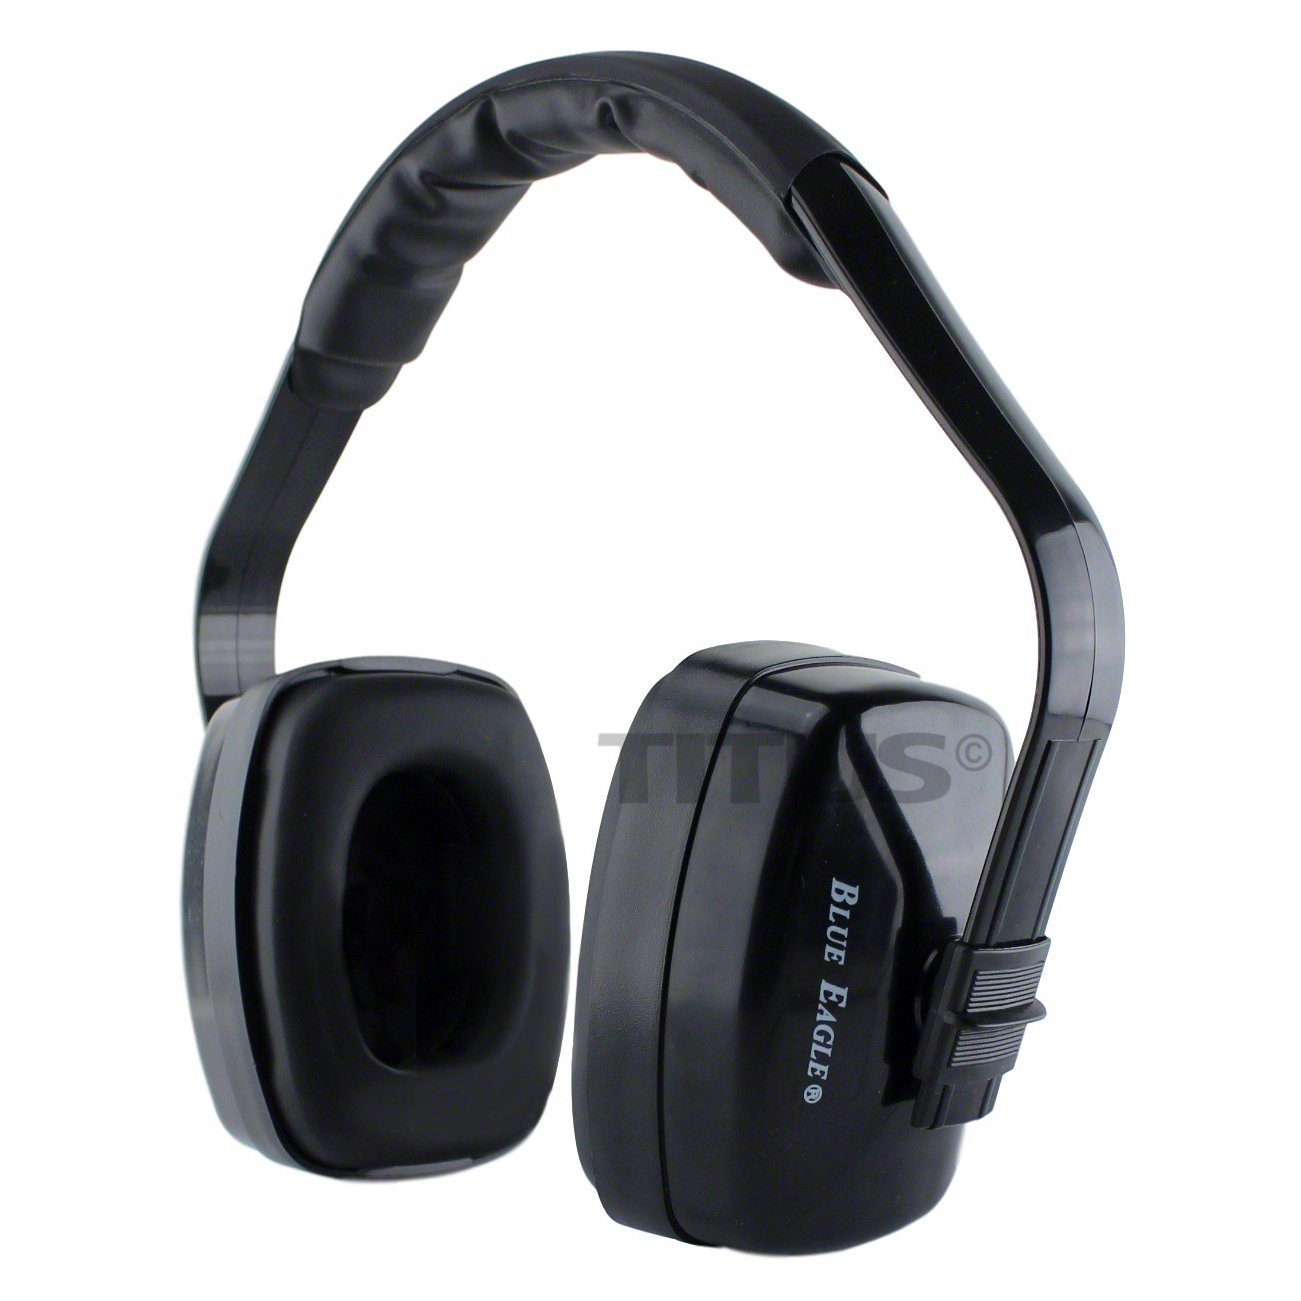 Titus XL Earmuffs - Blue Eagle 24 NRR Rated - Hearing Protection by Christensen Safety Equipment